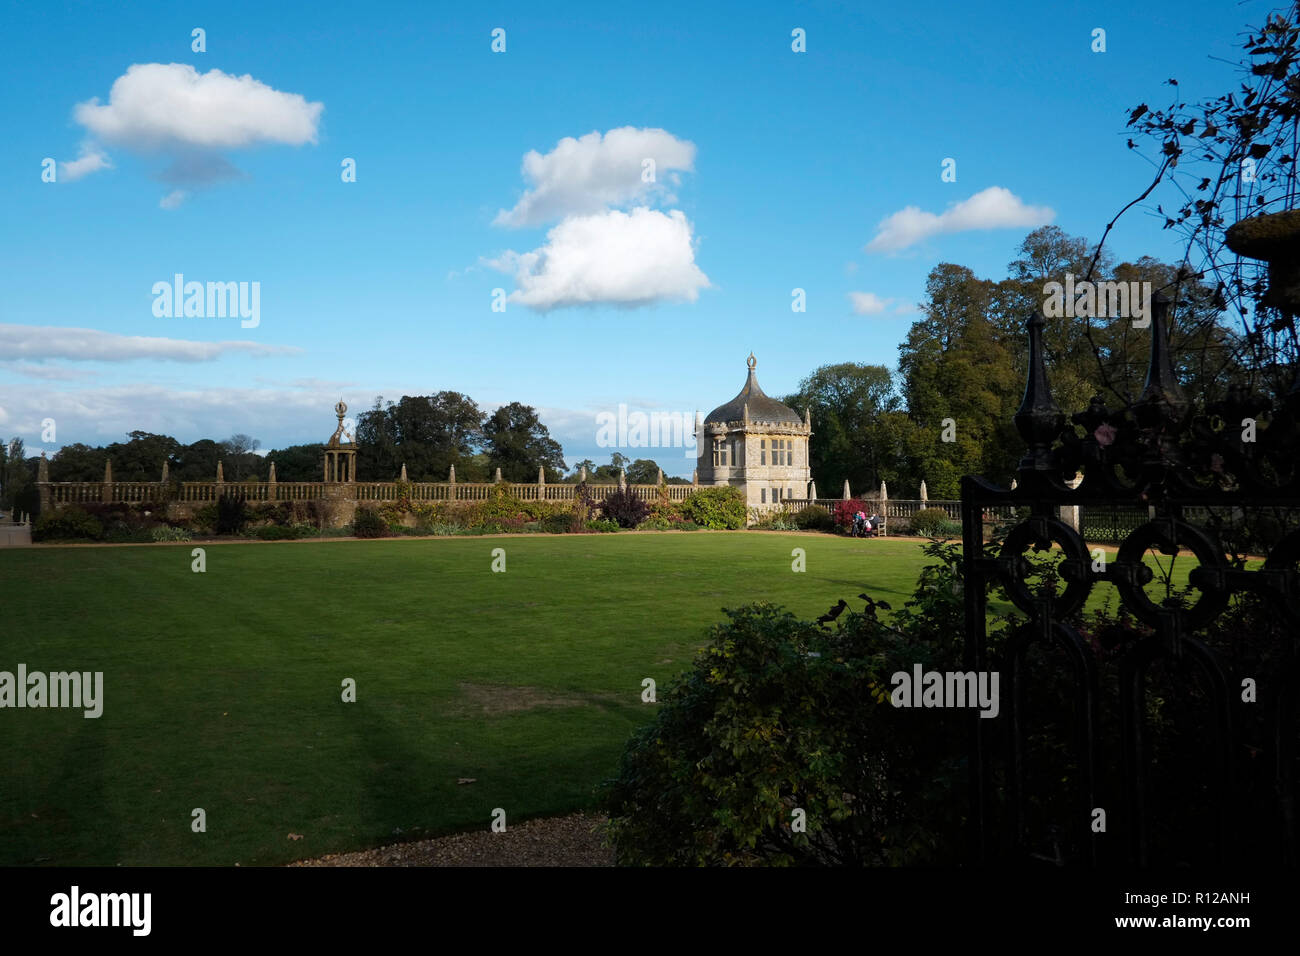 Montacute House Montacute South Somerset. The gardens showing one of two Angle Houses and the quadrangle walls to the west and south Stock Photo